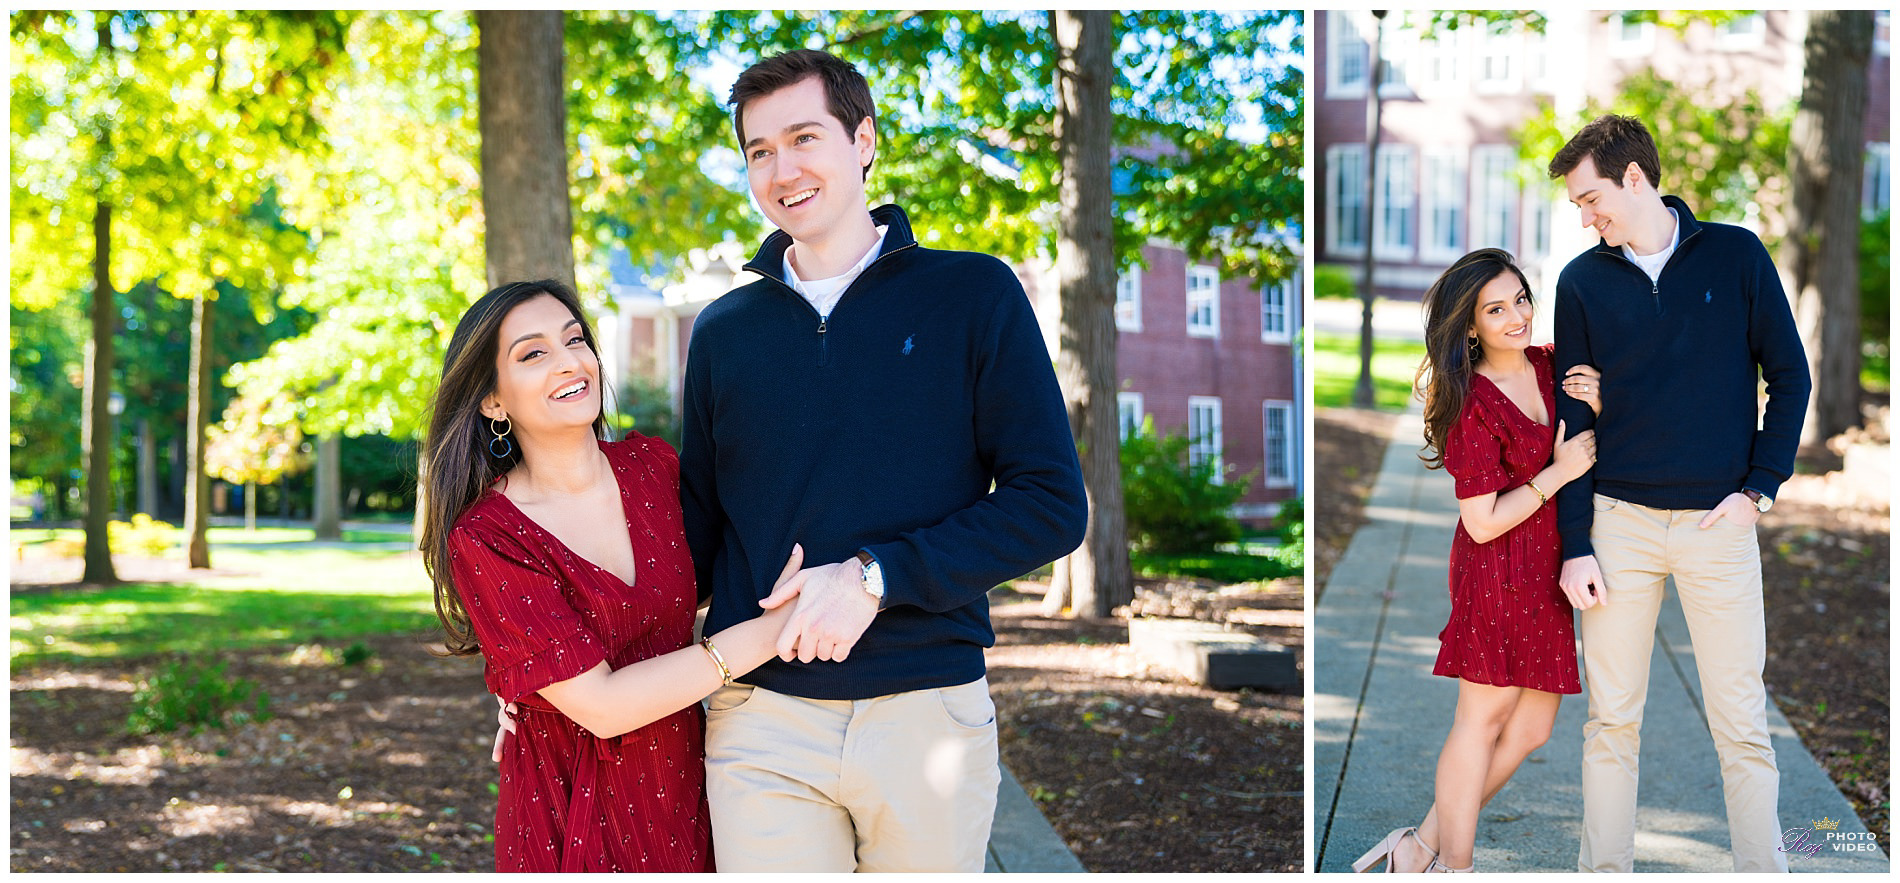 The-College-of-New-Jersey-Engagement-Shoot-Prerna-Kevin21.jpg